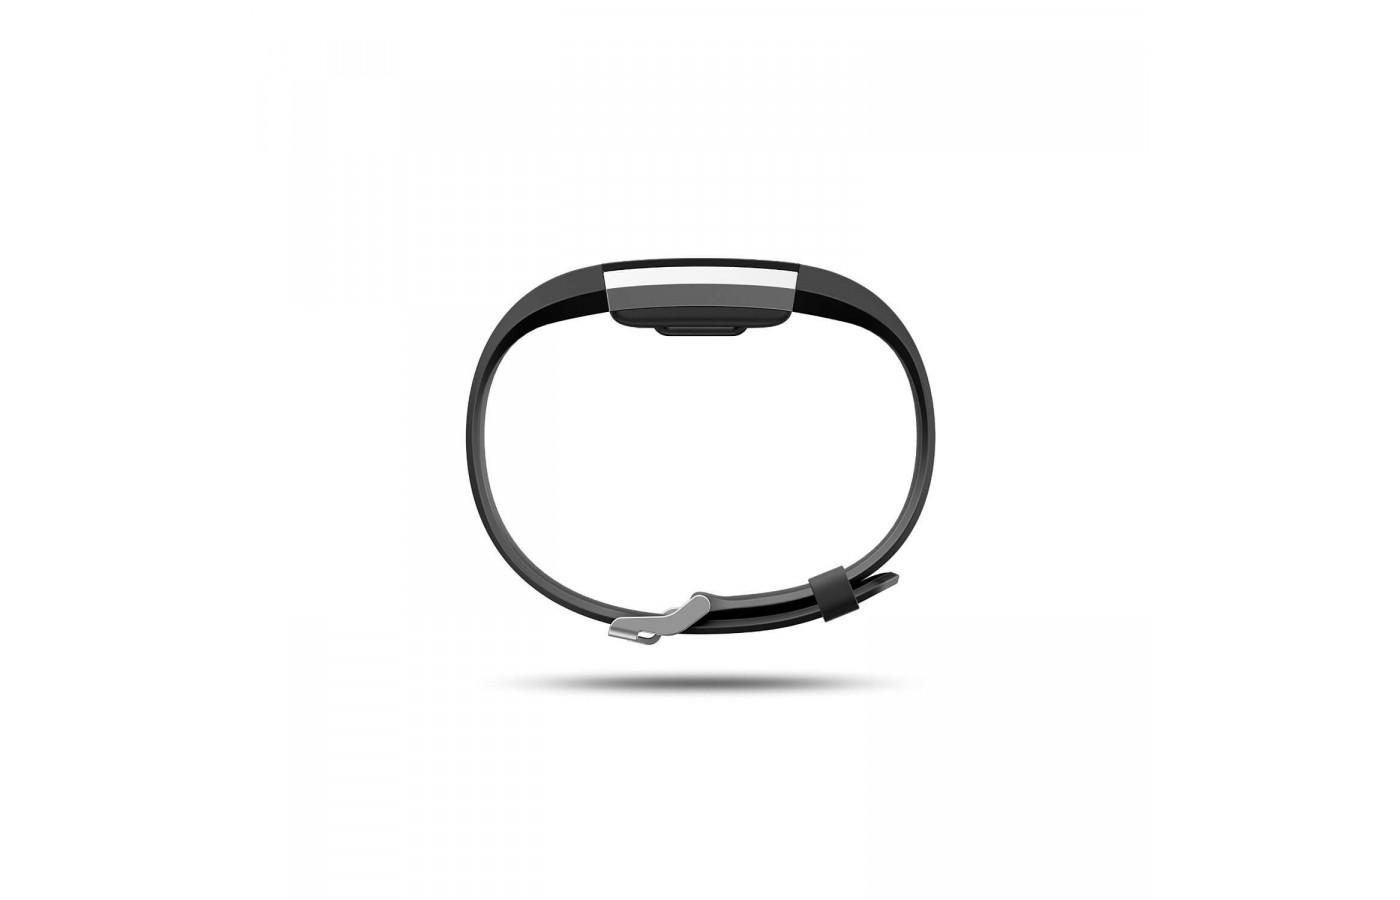 Fitbit Charge 2 bands are interchangeable